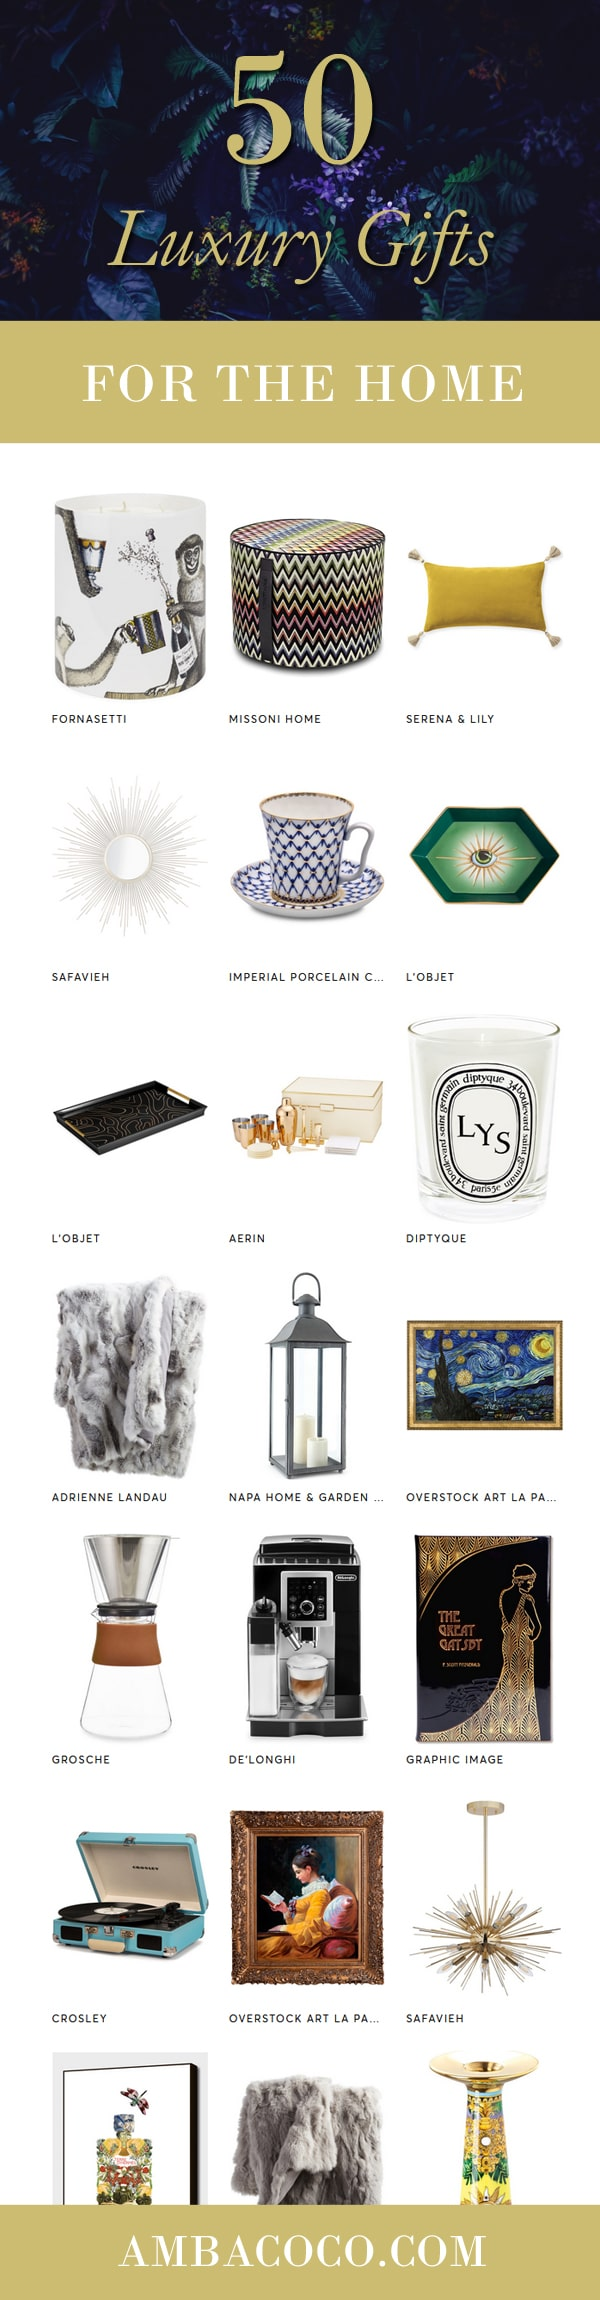 50 luxury gift ideas for the home